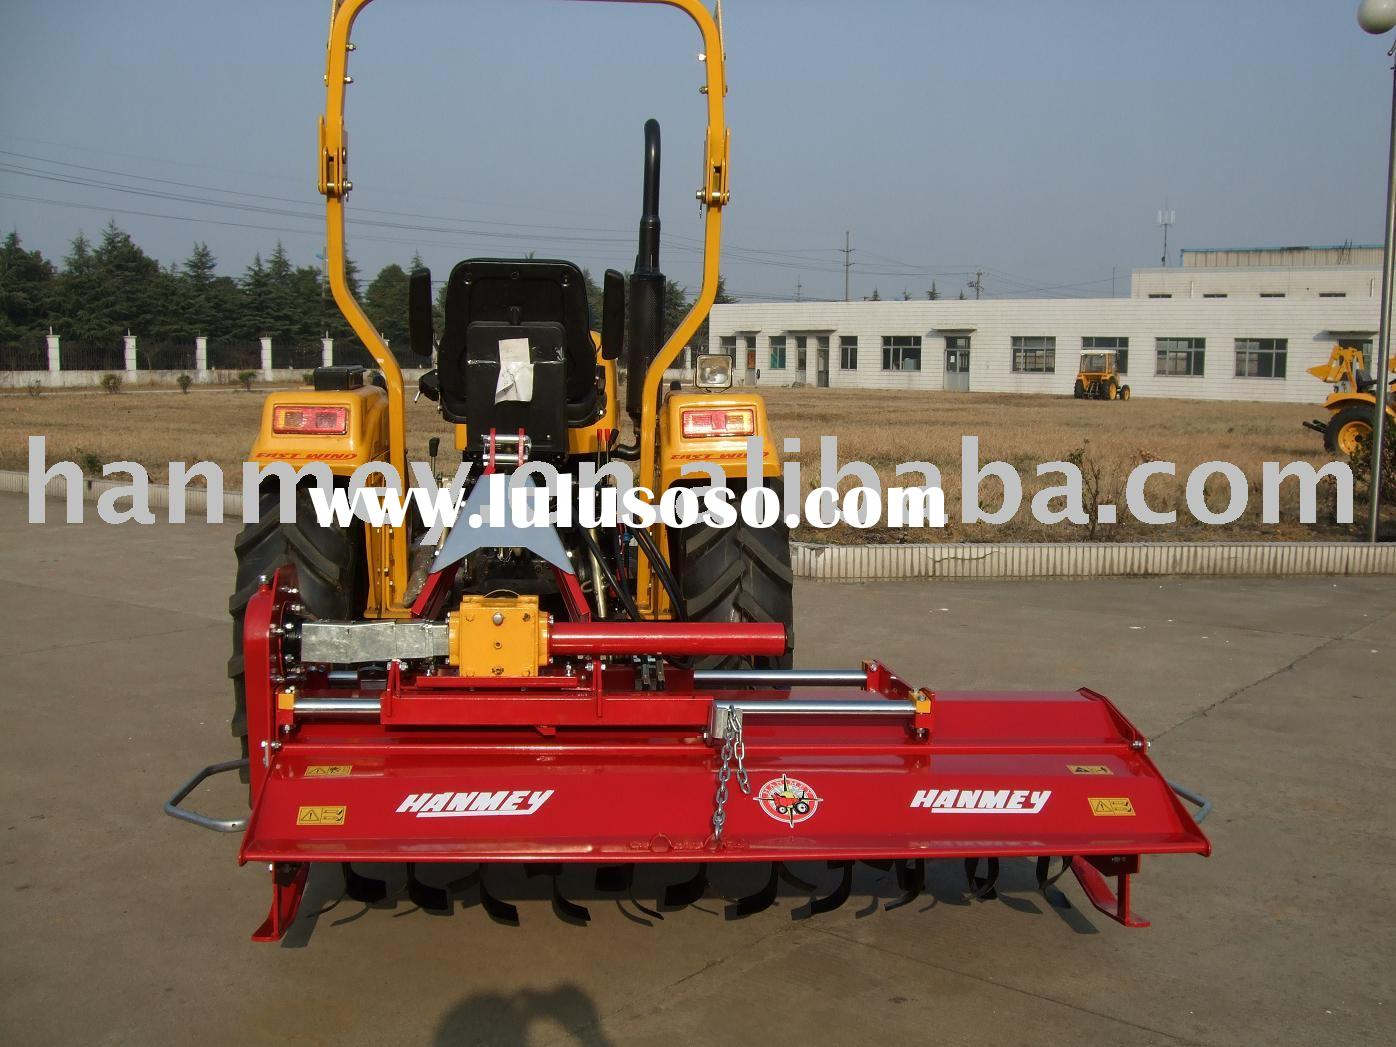 Hydraulic Cultivators, rotary cultivators